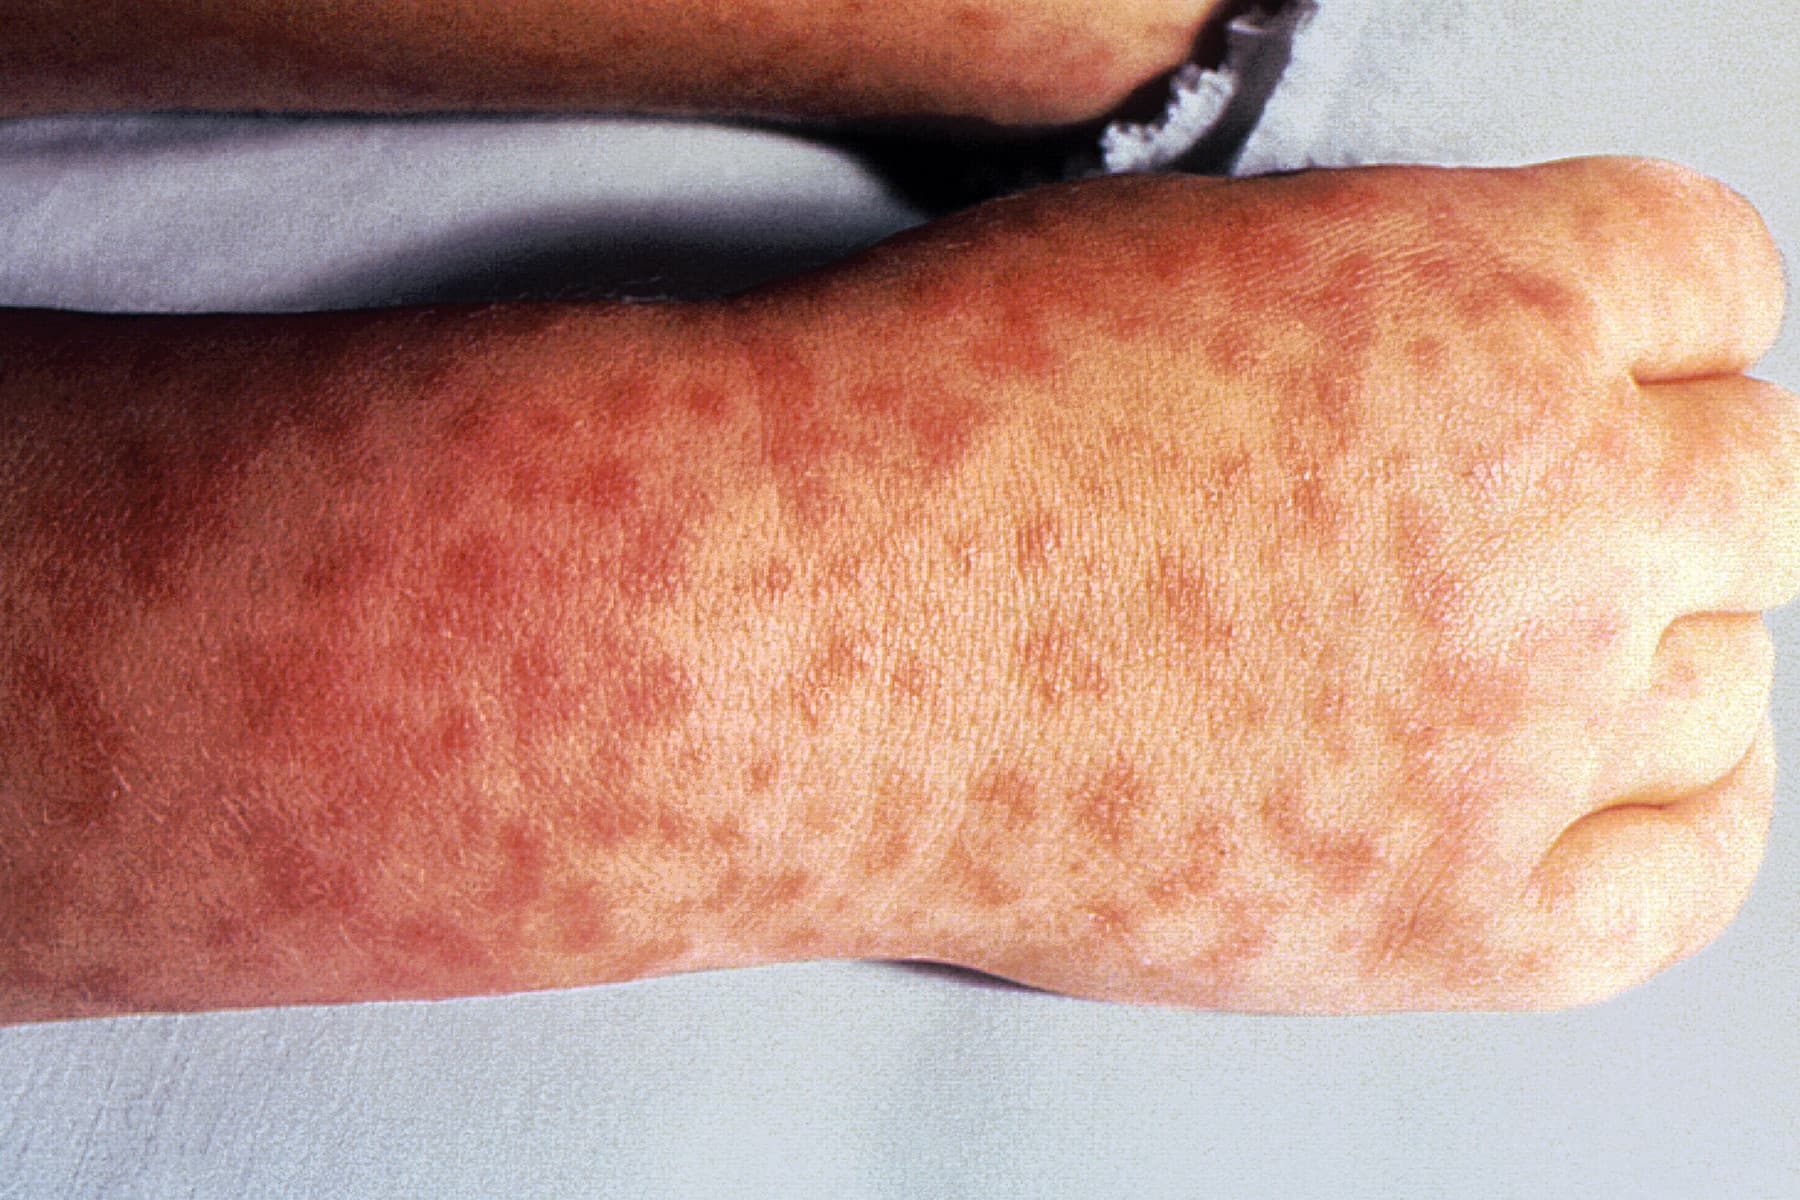 Pictures of Viral Rashes in Adults & Children